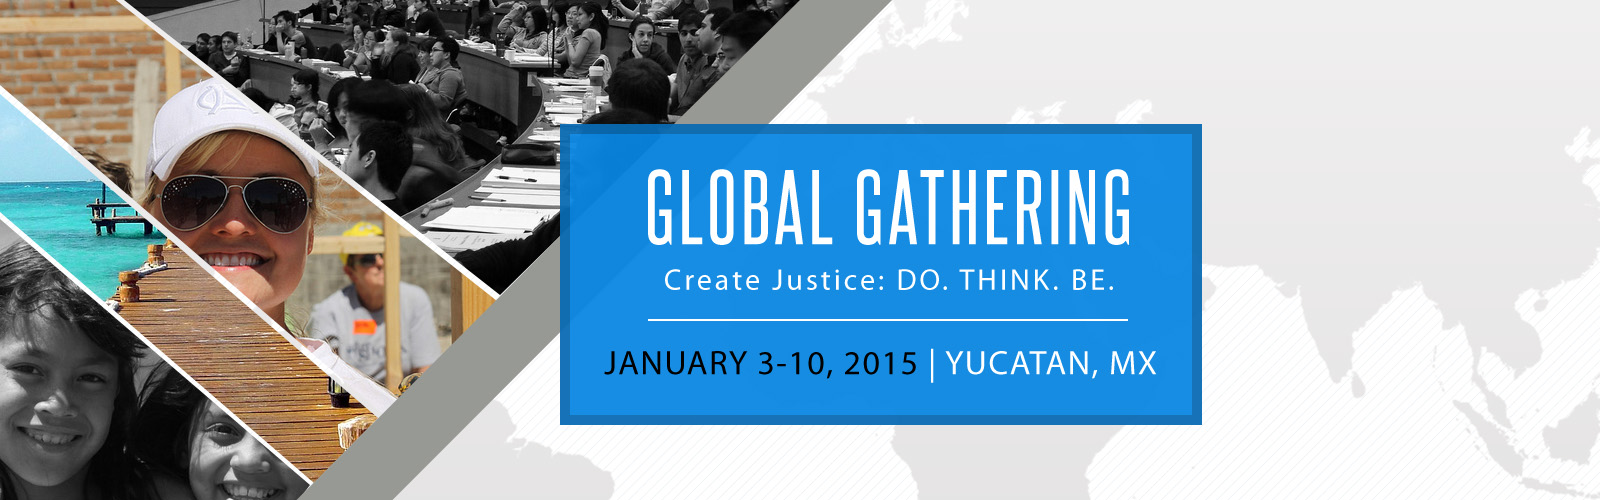 The Global Gathering - January 2015 - Create Justice